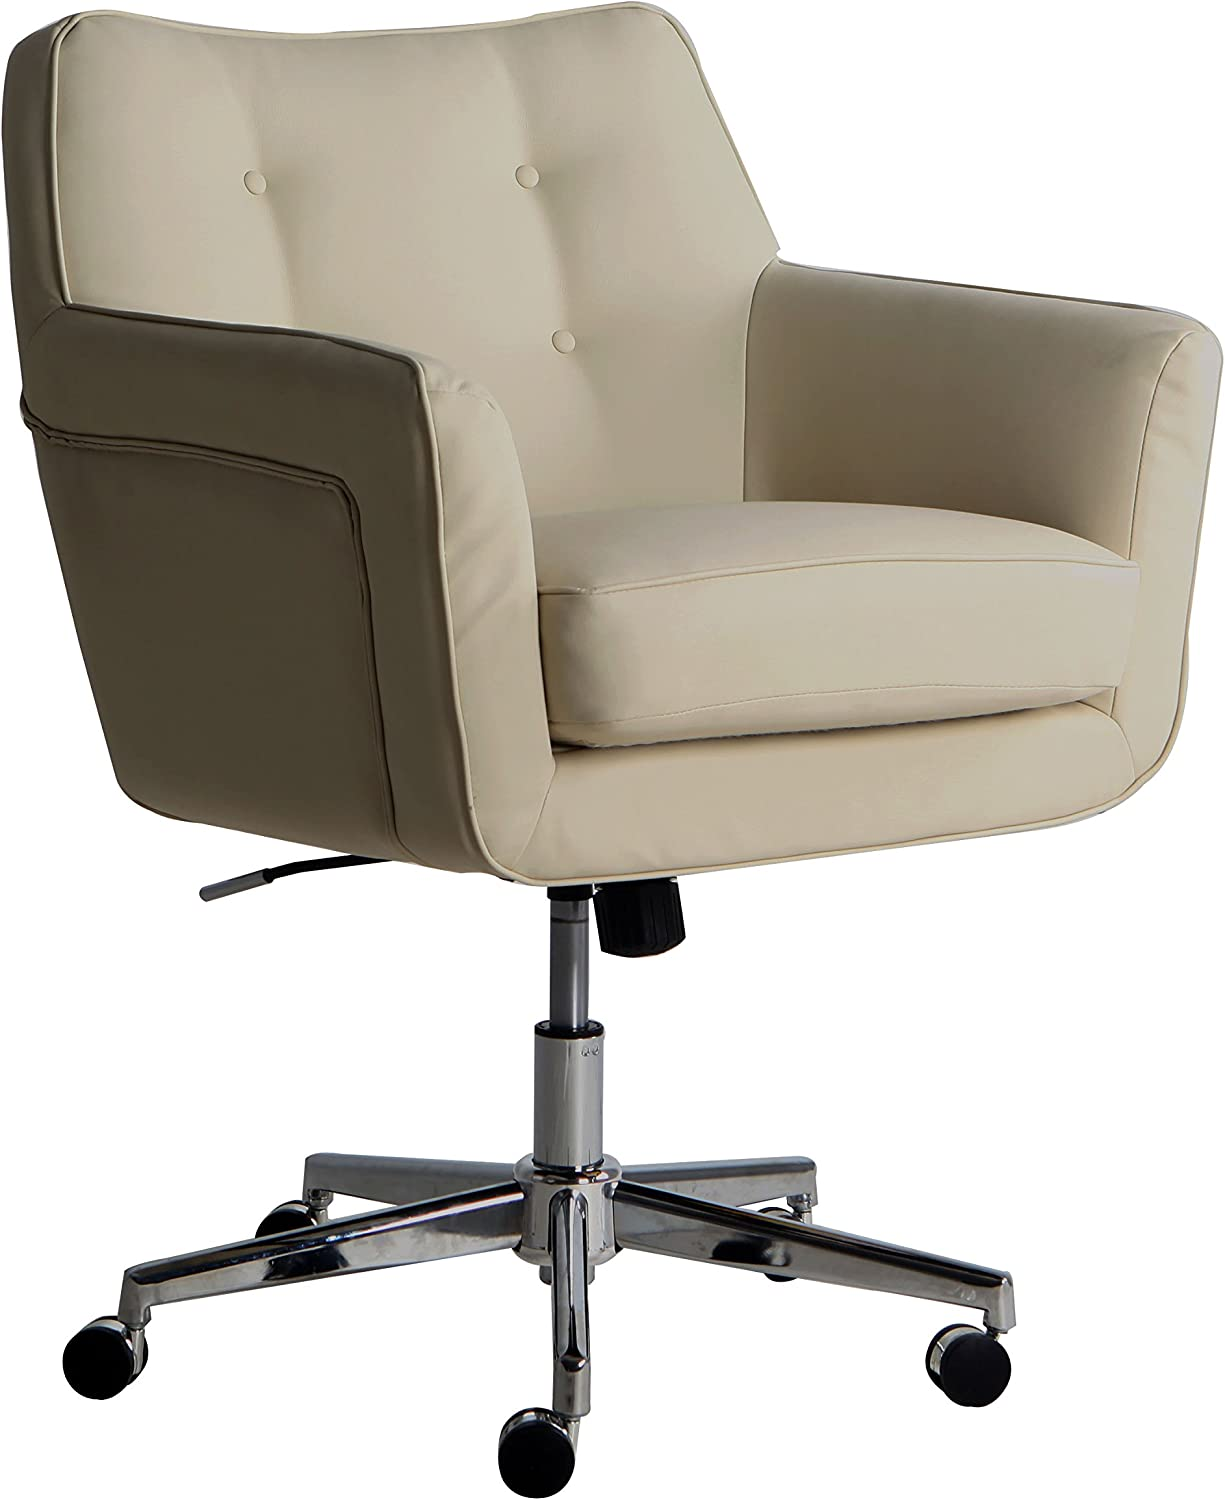 Amazon Com Serta Style Ashland Home Office Chair Sweet Cream Bonded Leather Furniture Decor